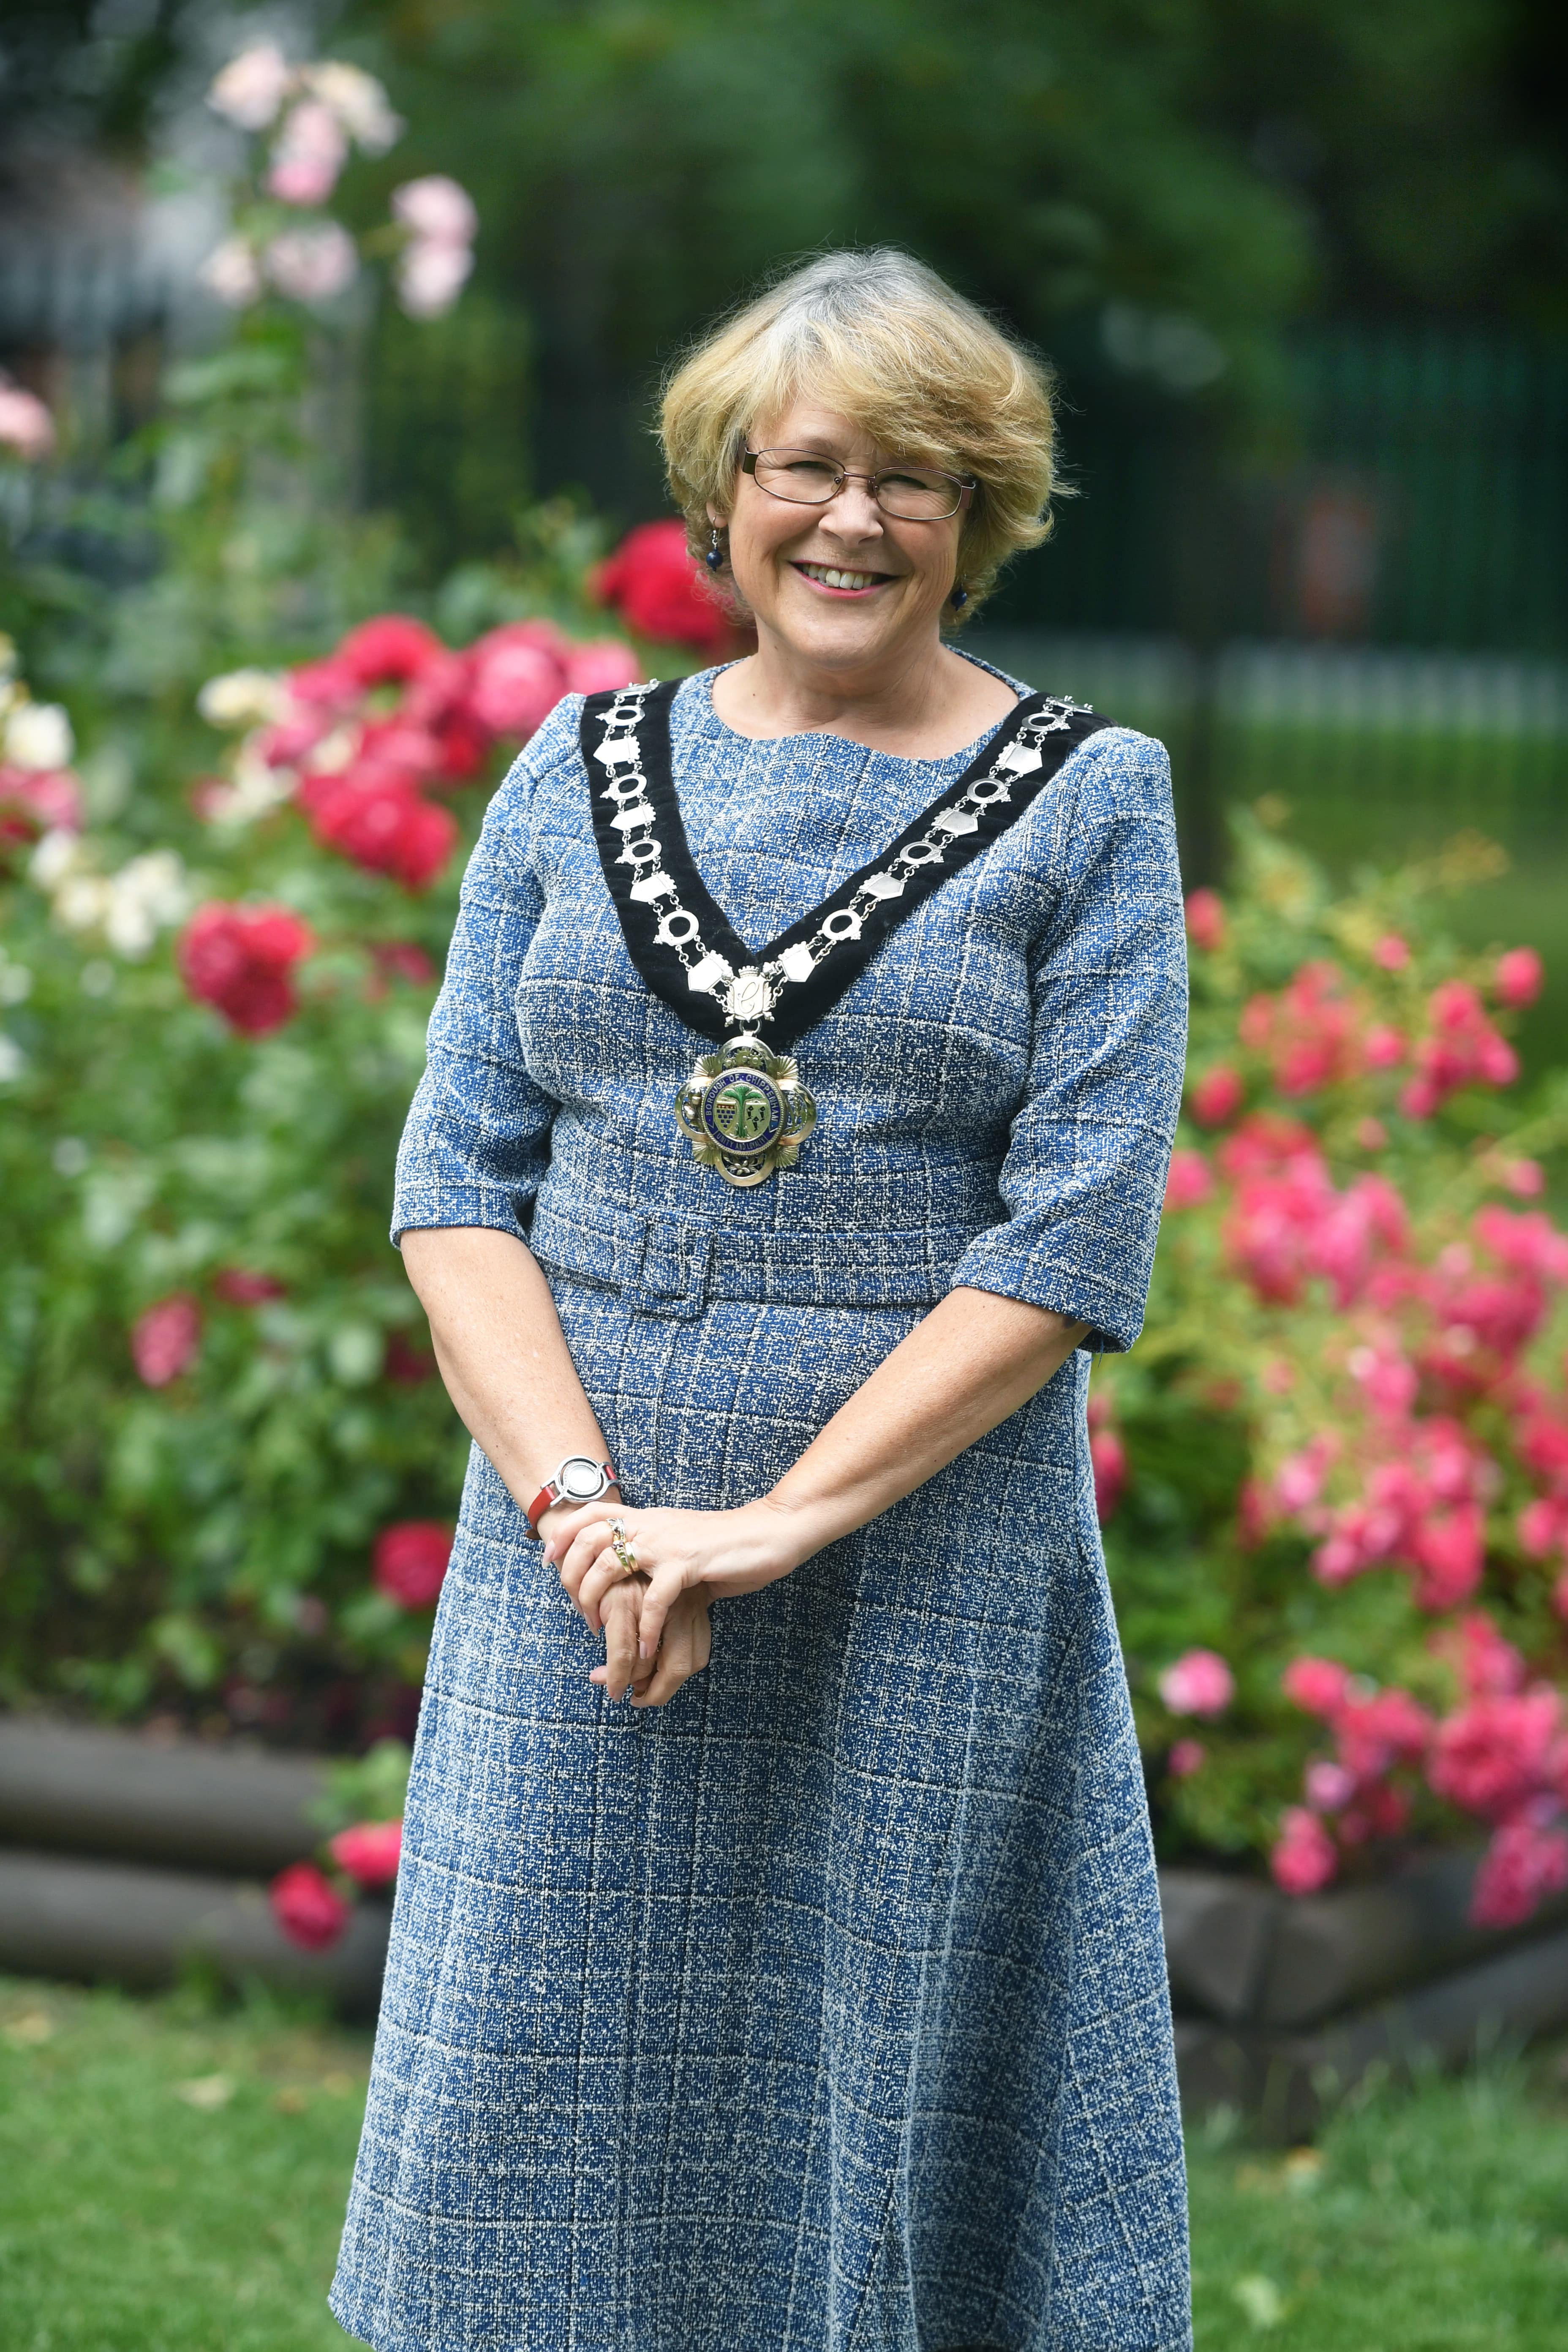 Mayor of Chippenham Councillor Teresa Hutton standing outside on the park wearing her official mayoral chain of office